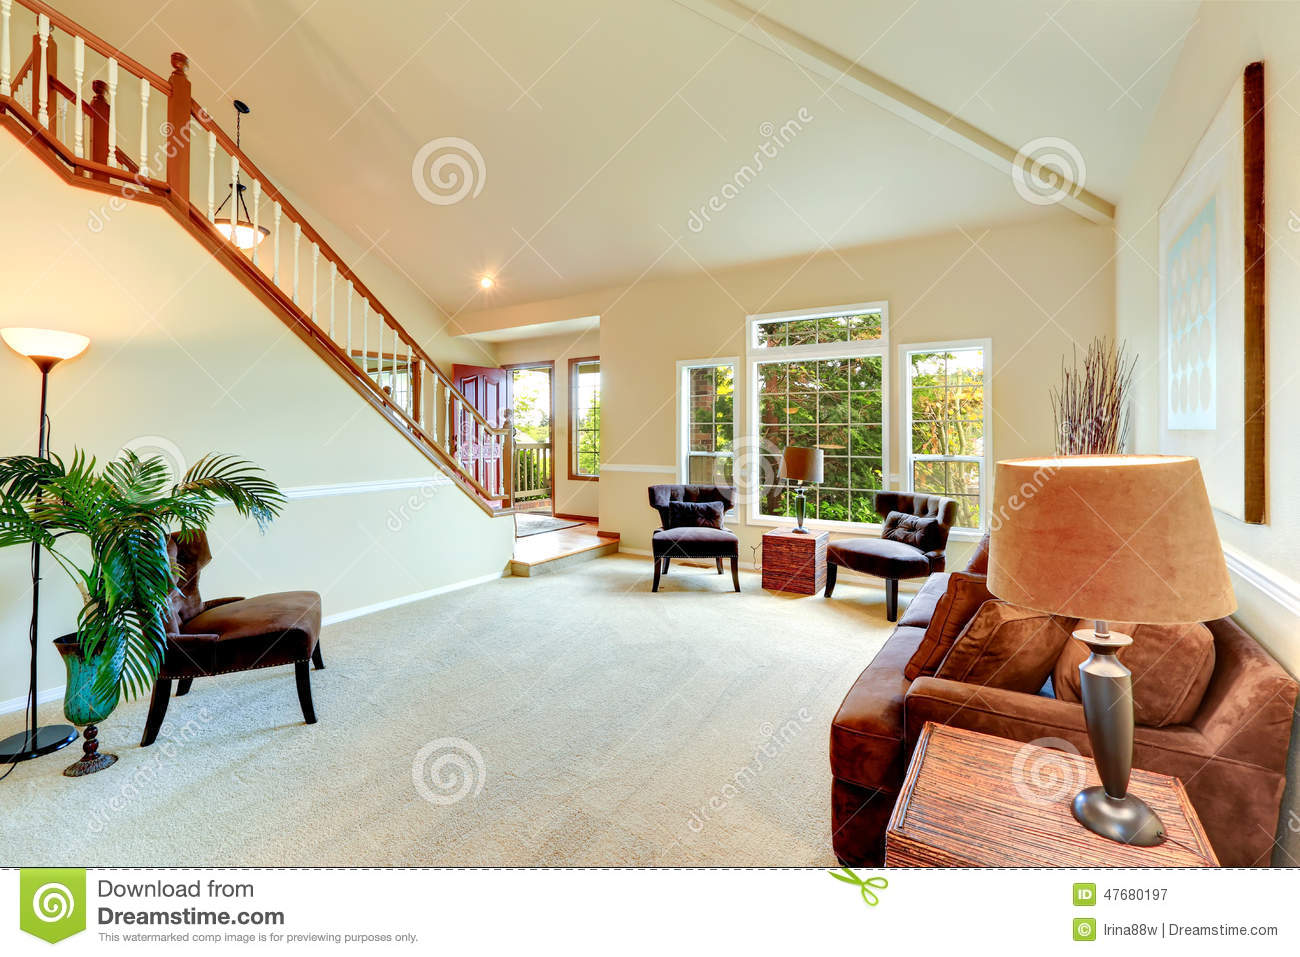 Bright Ivory Living Room With High Vaulted Ceiling And